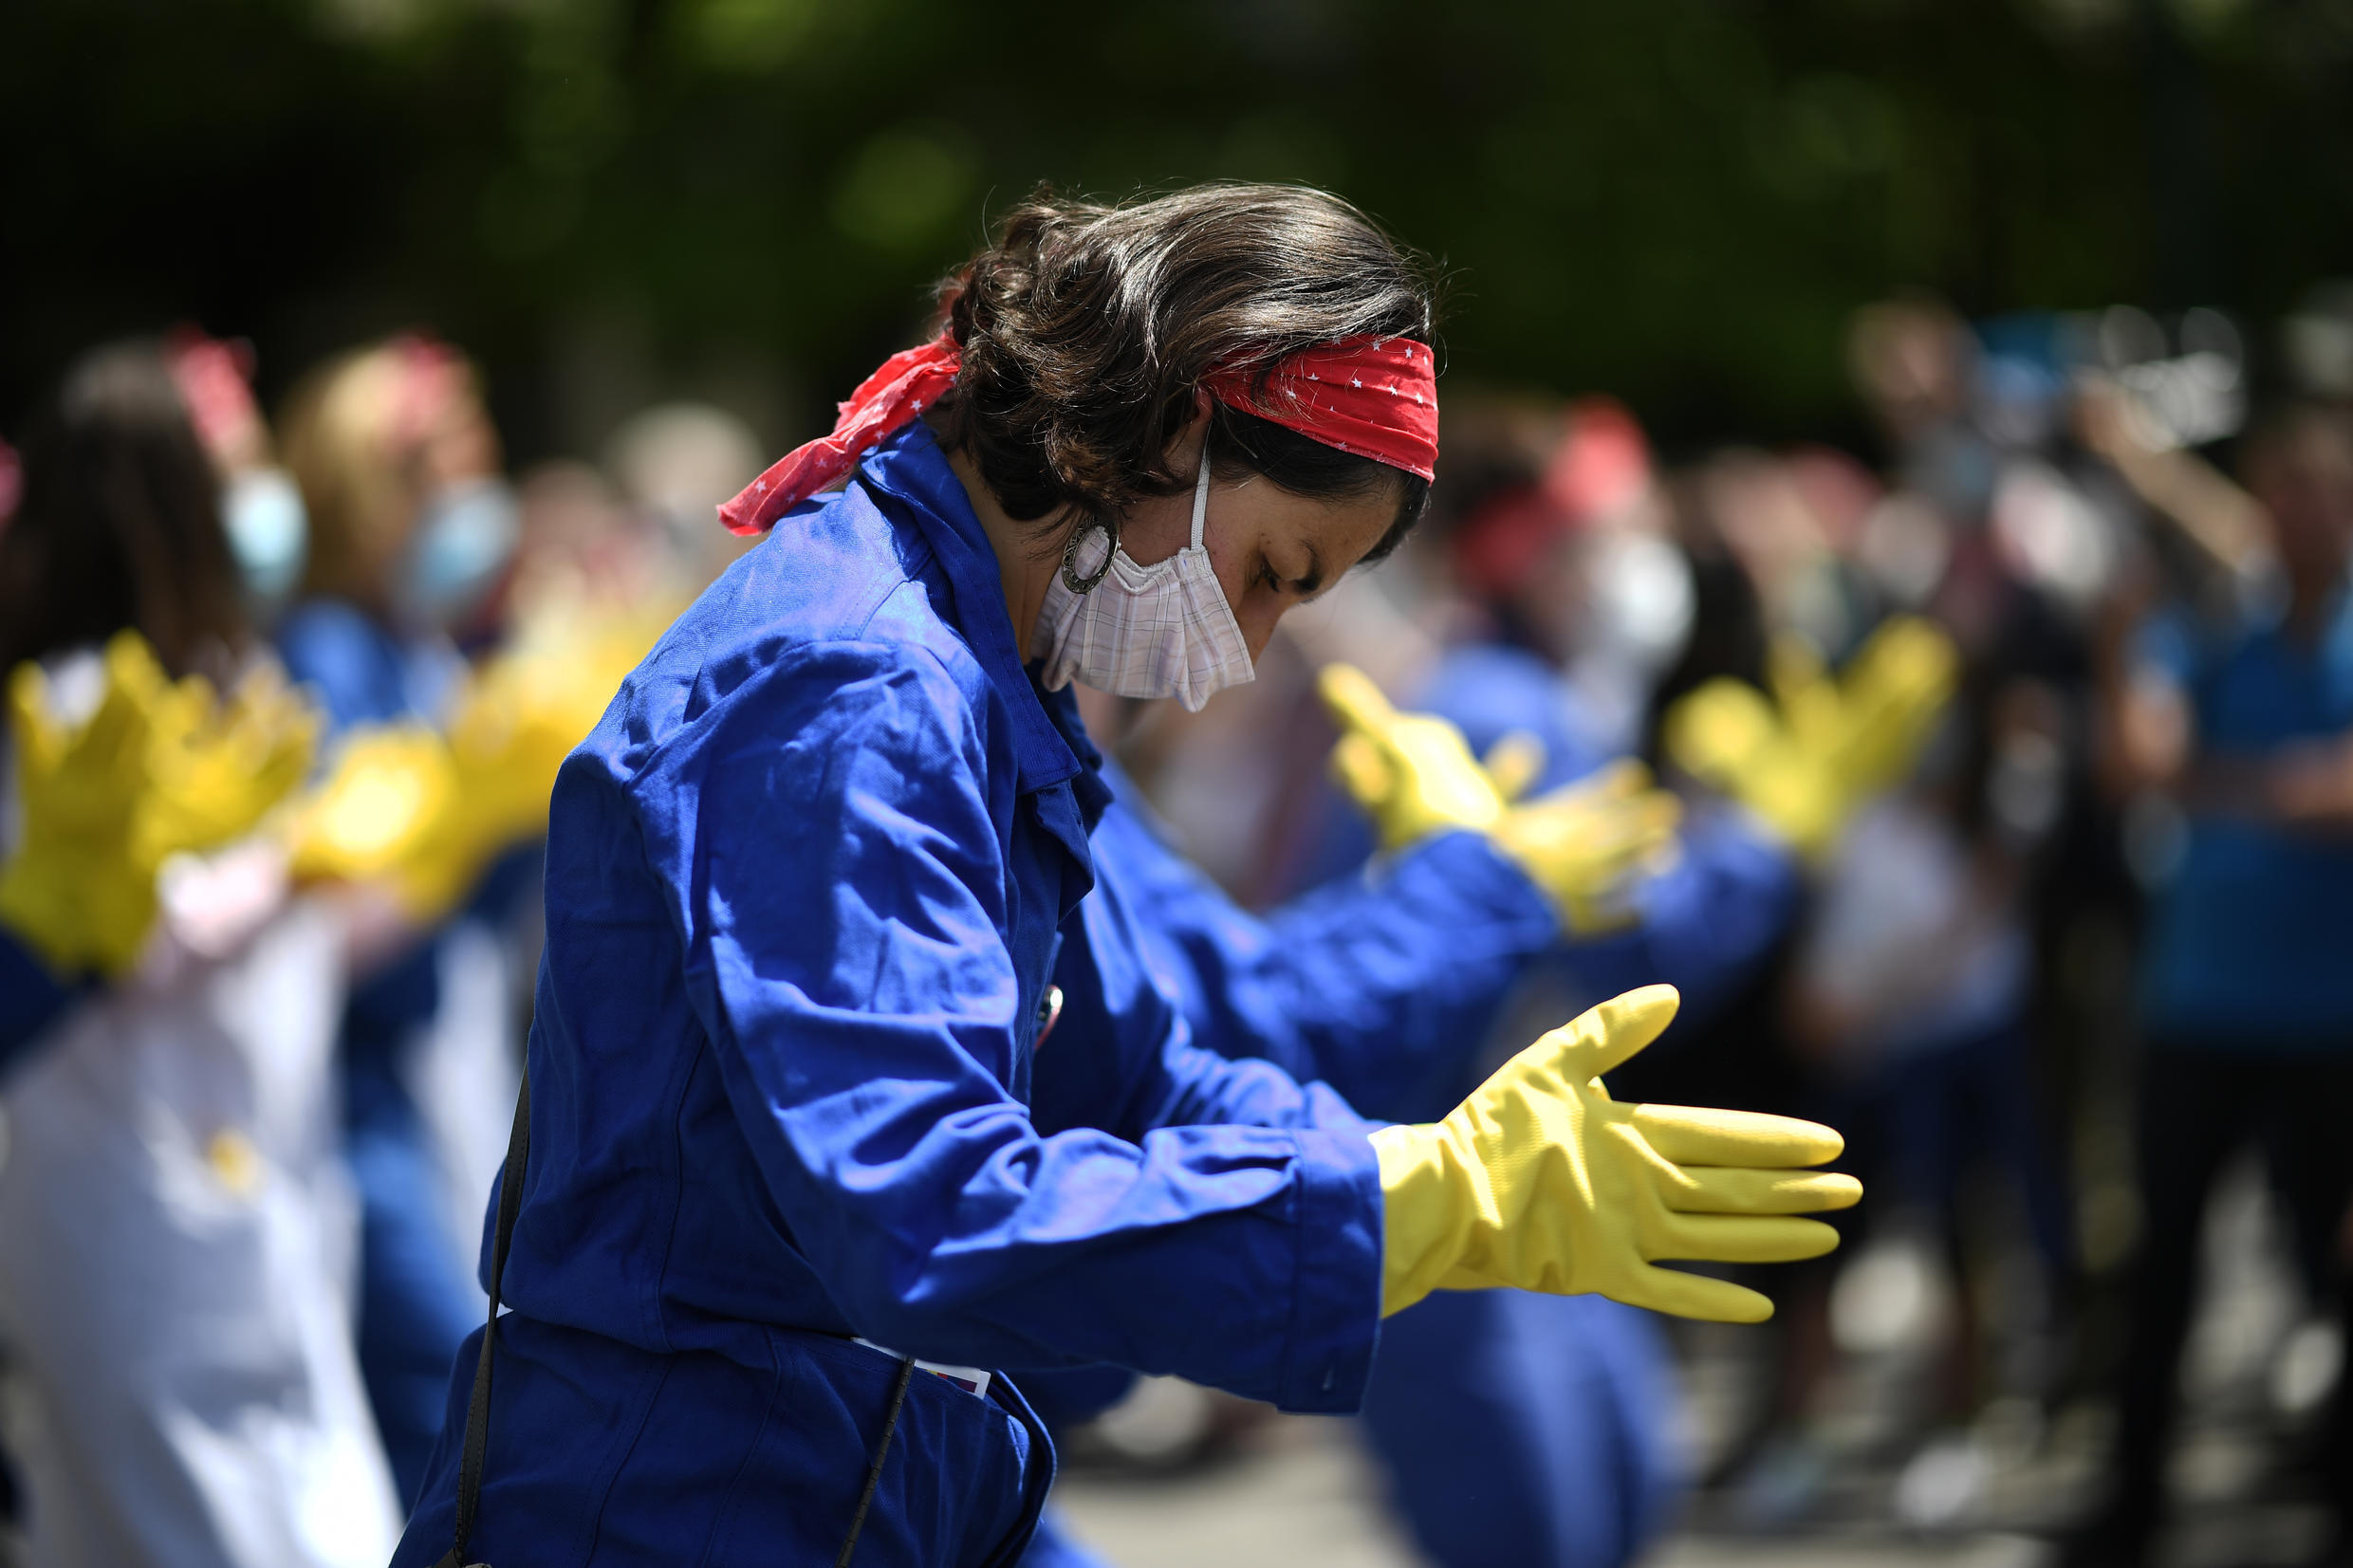 Masked protesters dressed as feminist icon Rosie the Riveter pictured in Paris on June 11, 2020.